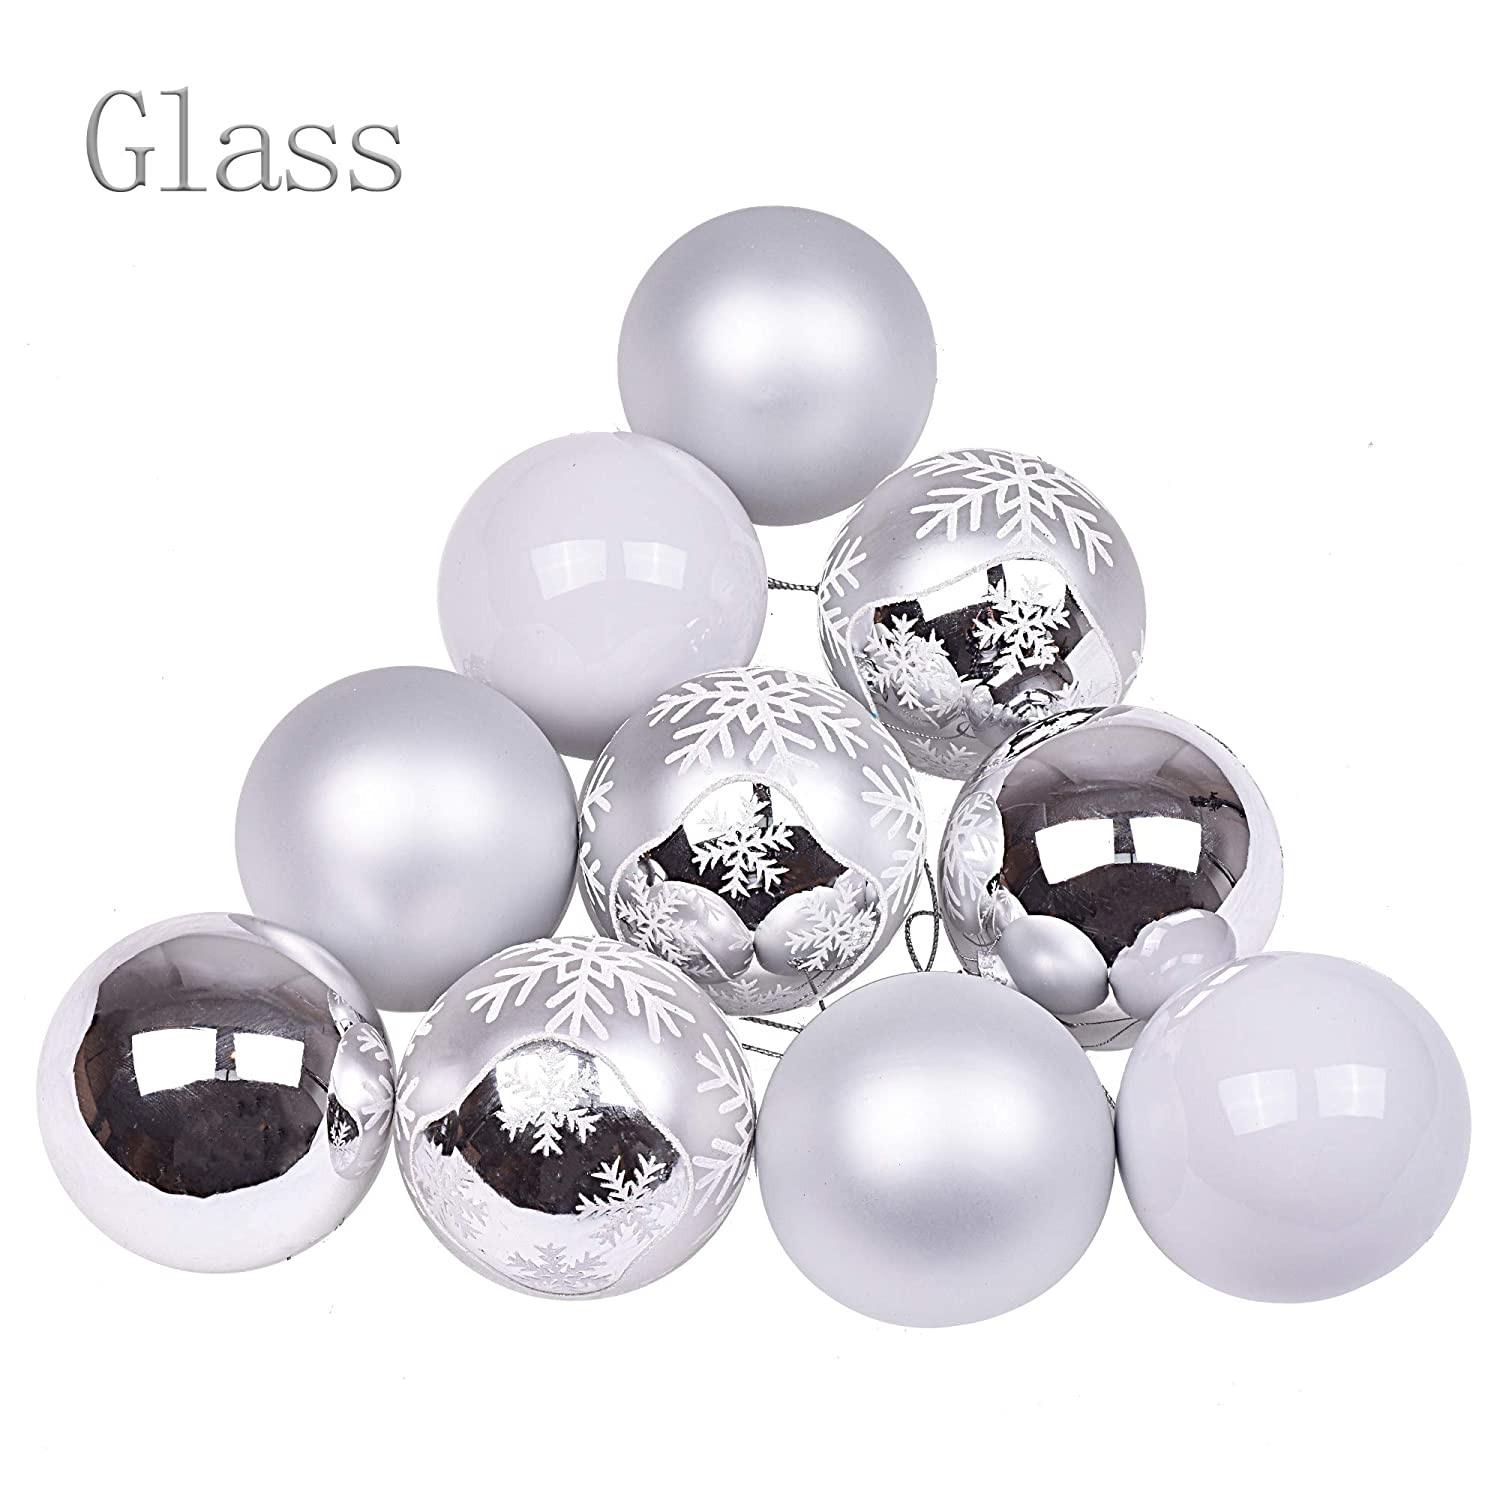 Victor S Workshop 12pcs Christmas Glass Baubles 2 4 6cm Frozen Winter Silver White Ball Ornaments Christmas Tree Decorations Themed With Matching